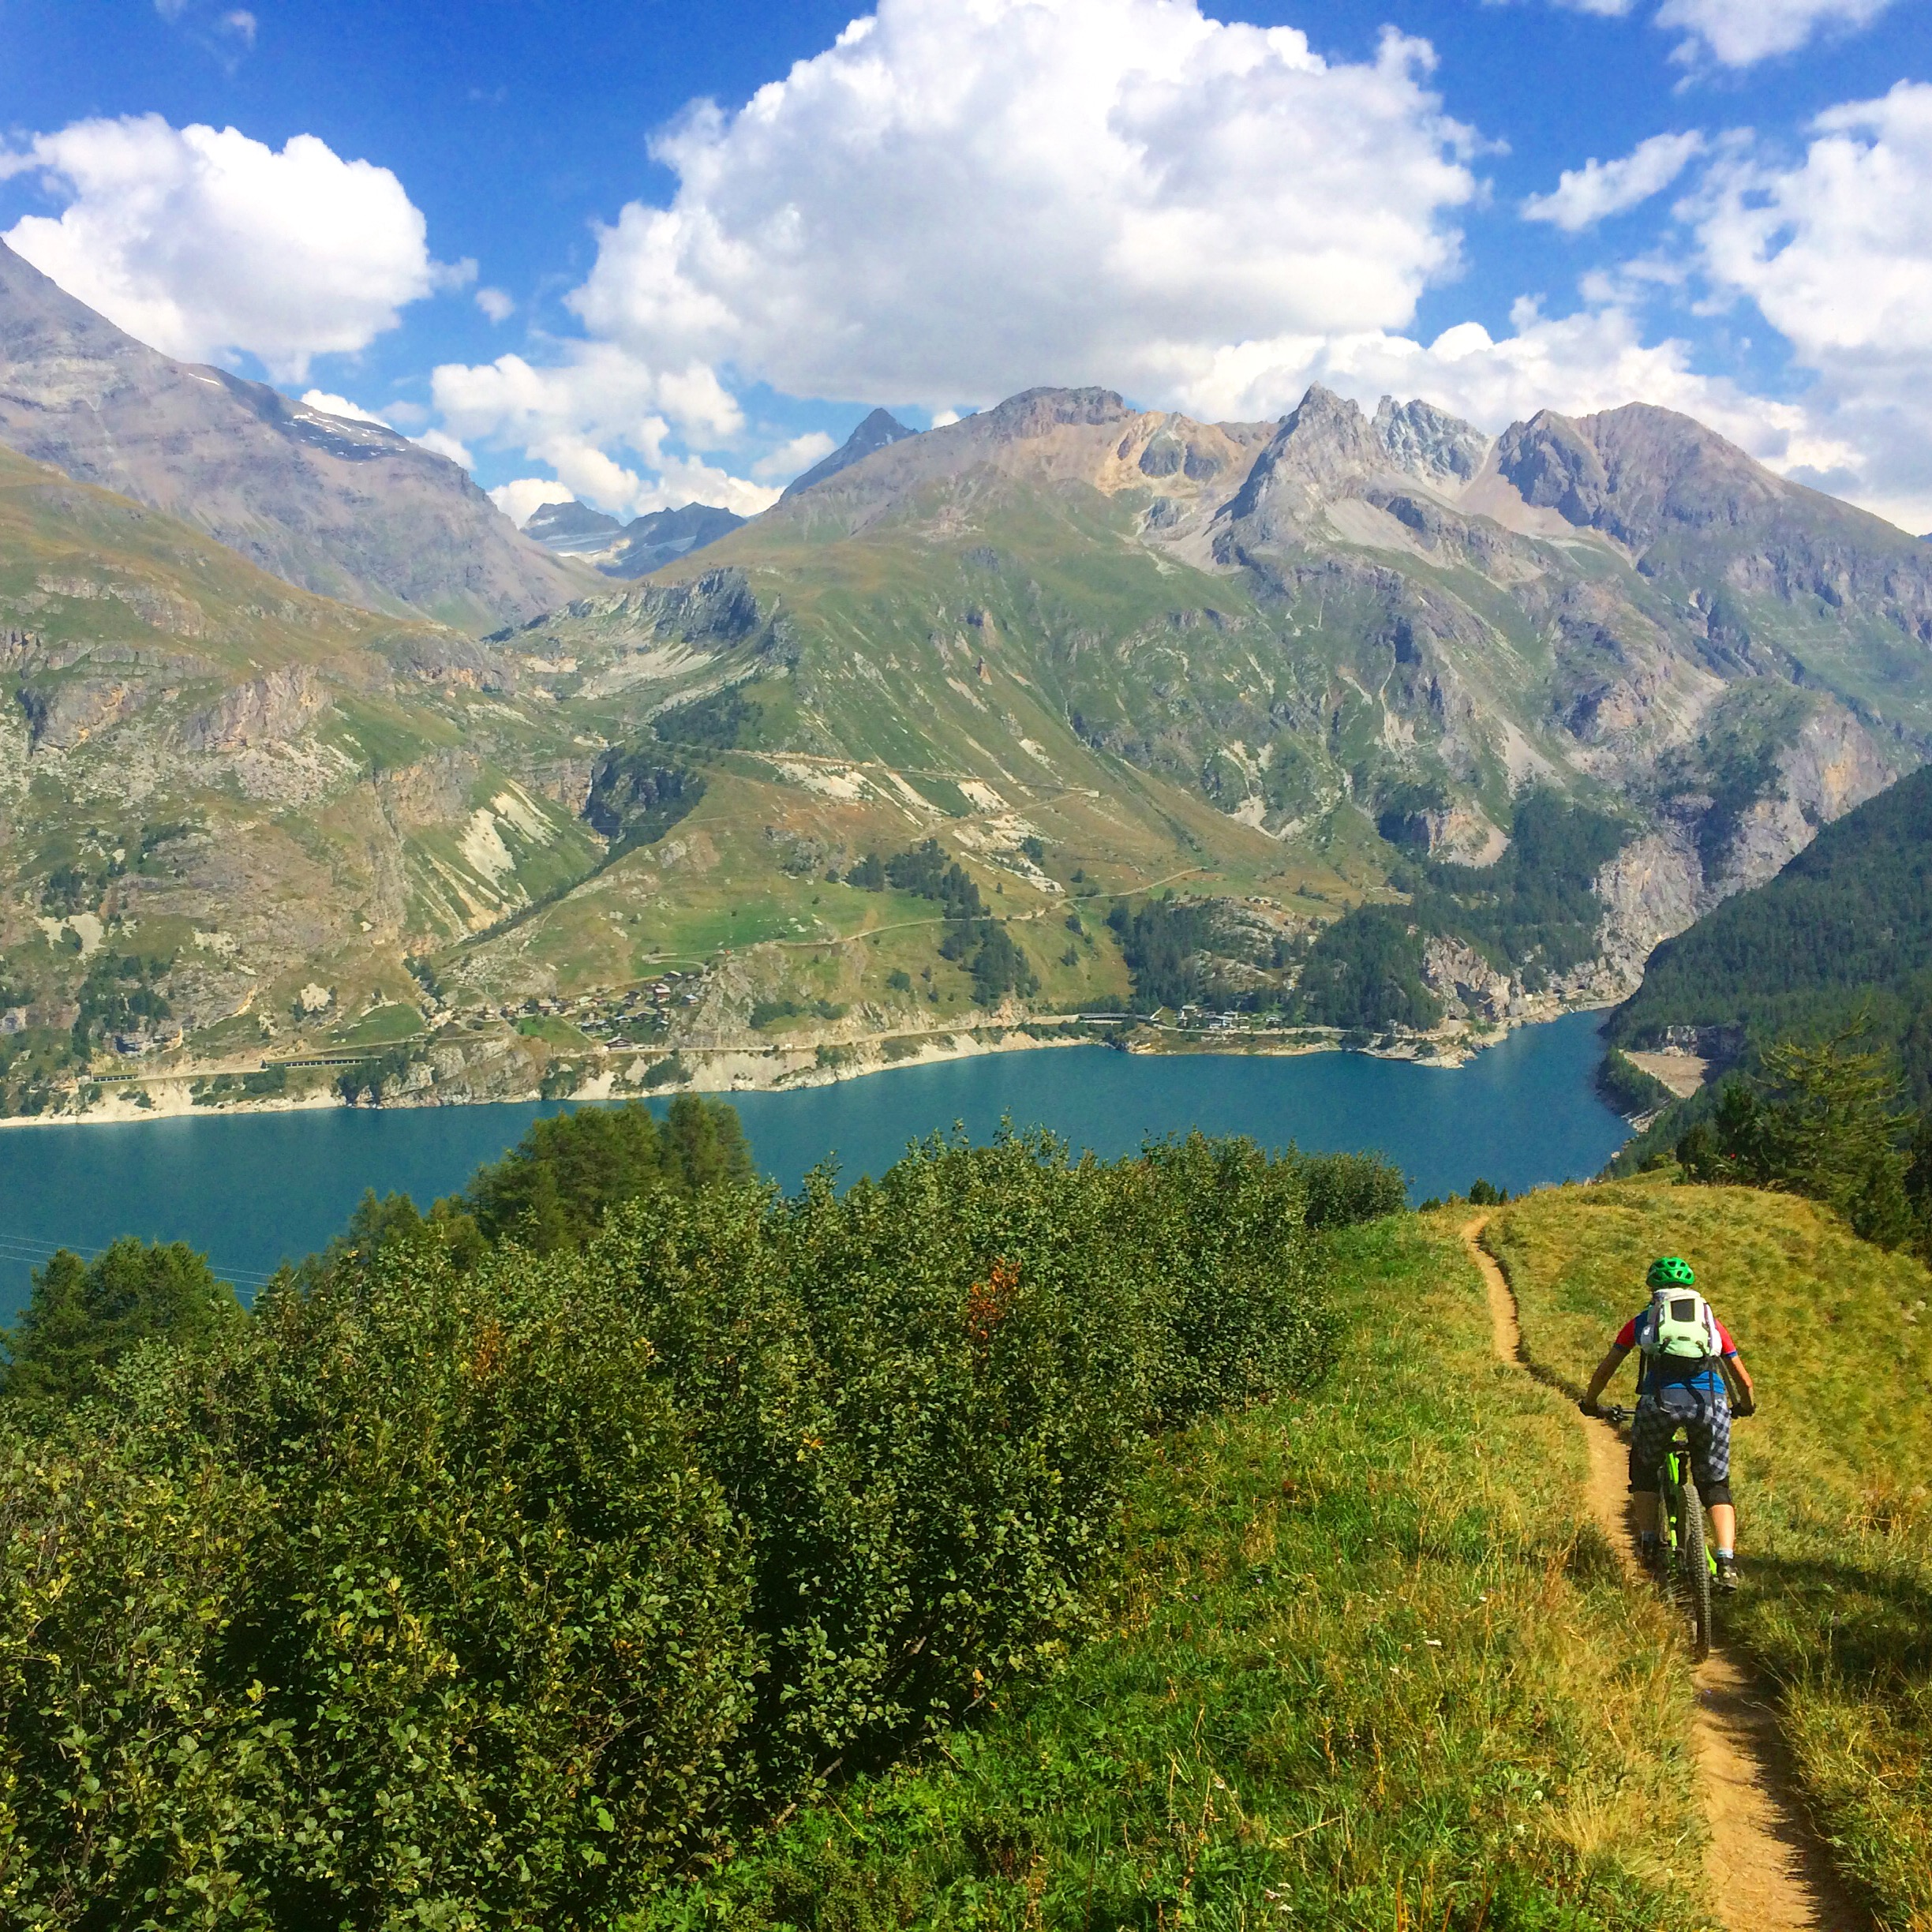 Tignes mountain biking